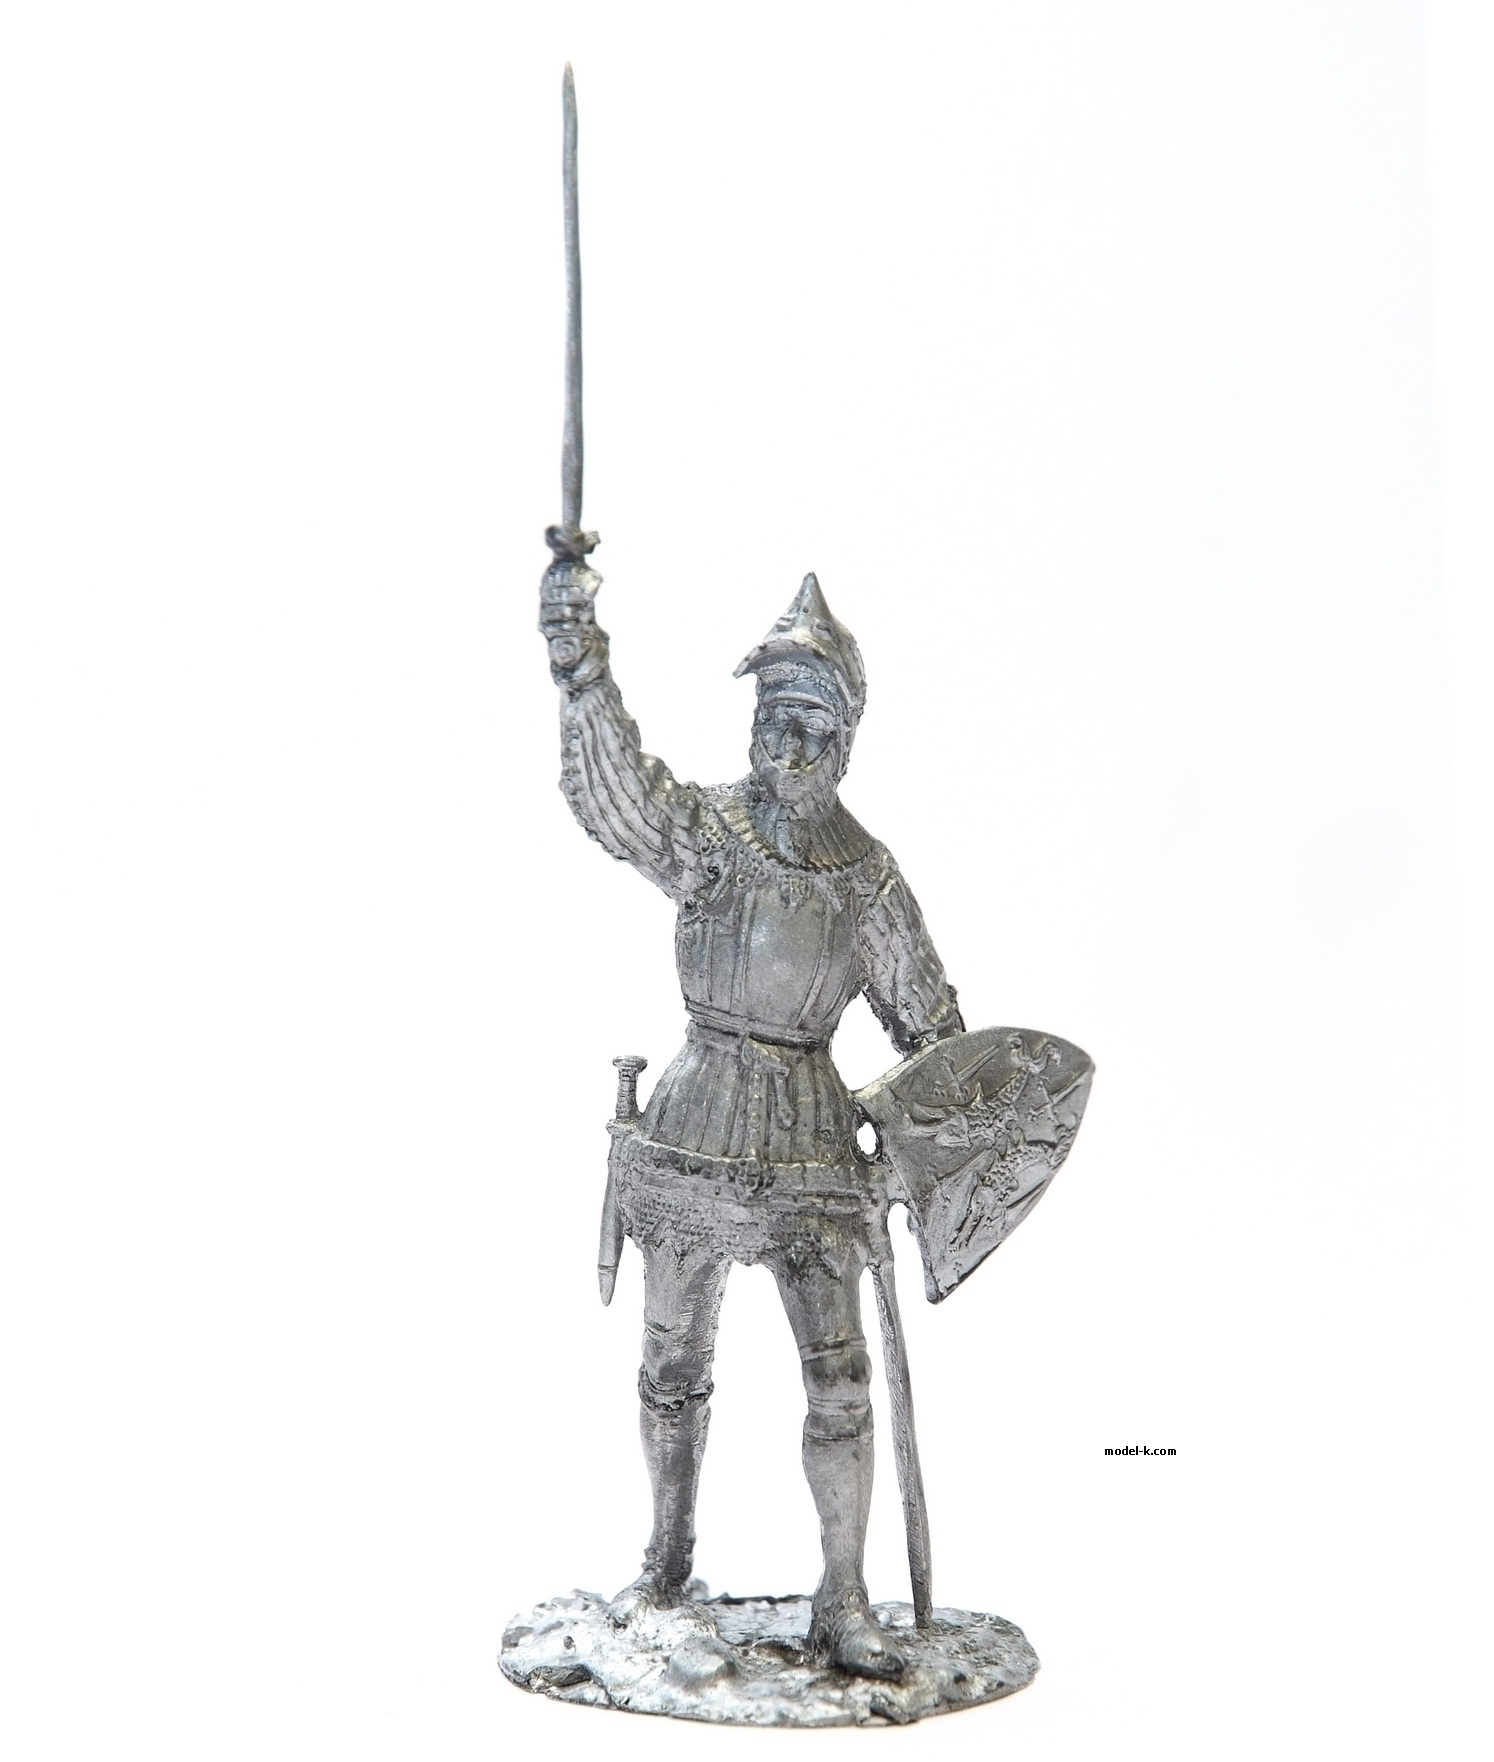 French Knight 54mm figure